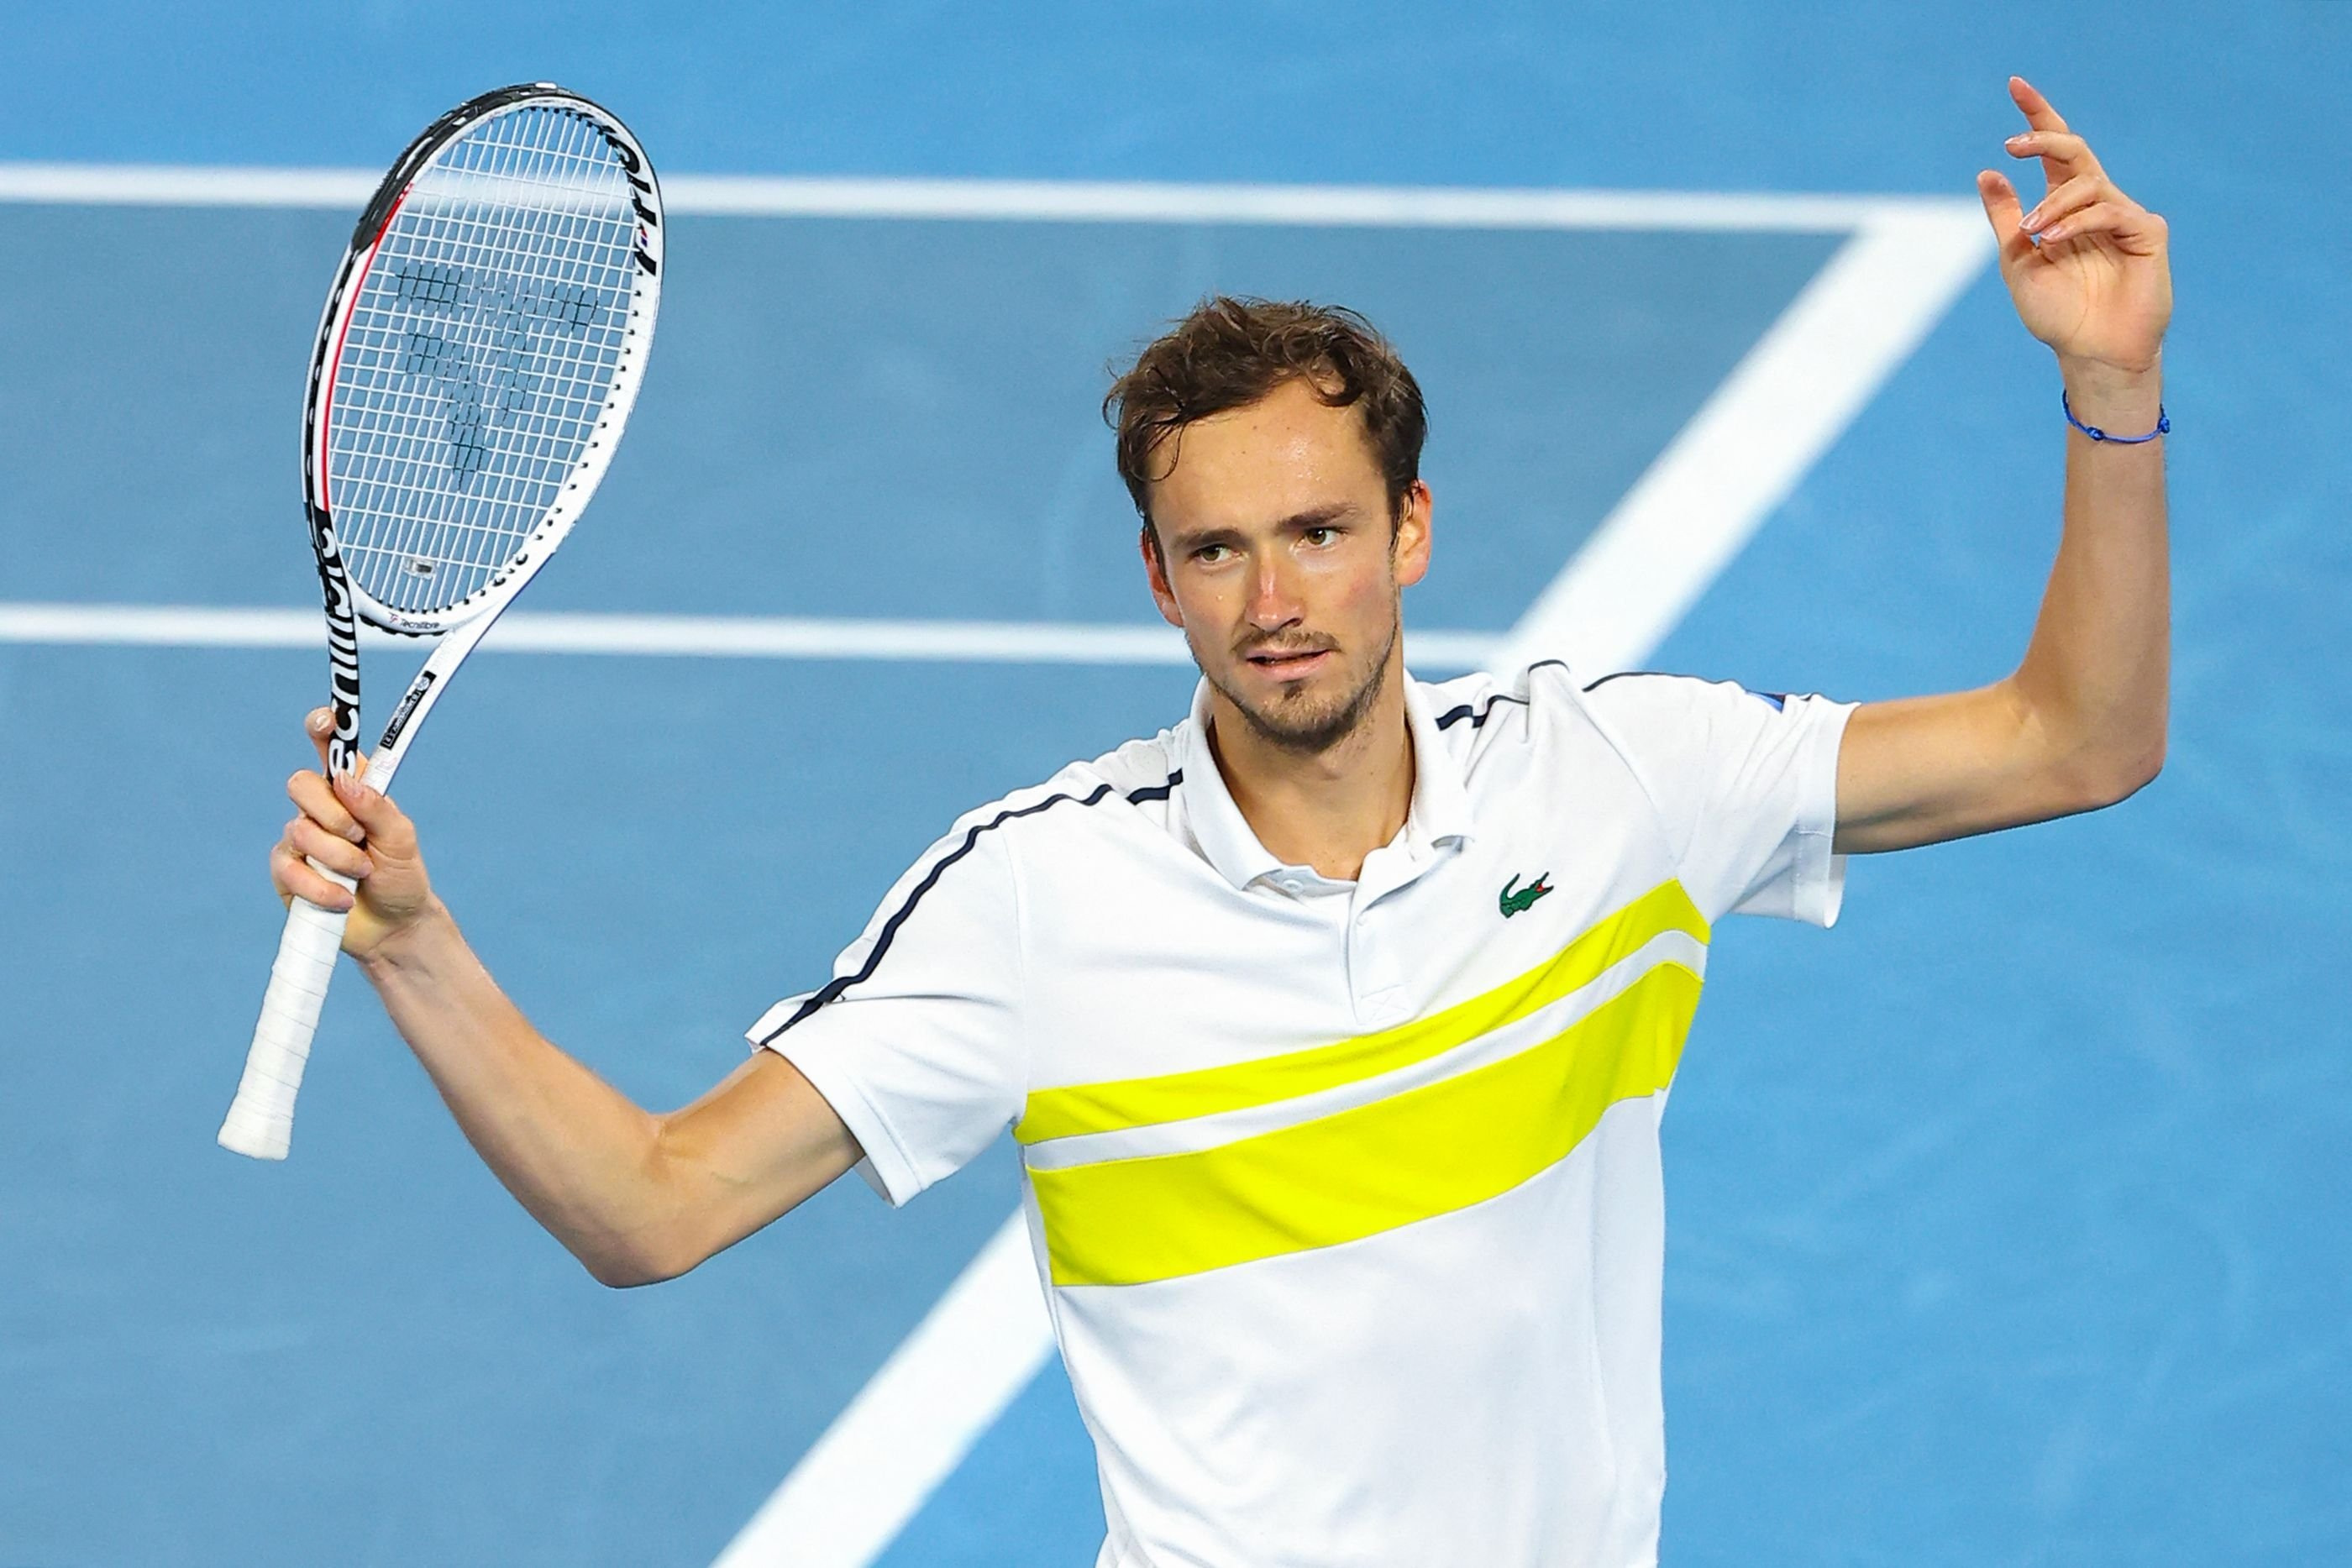 Second seed Medvedev rolls into US Open final